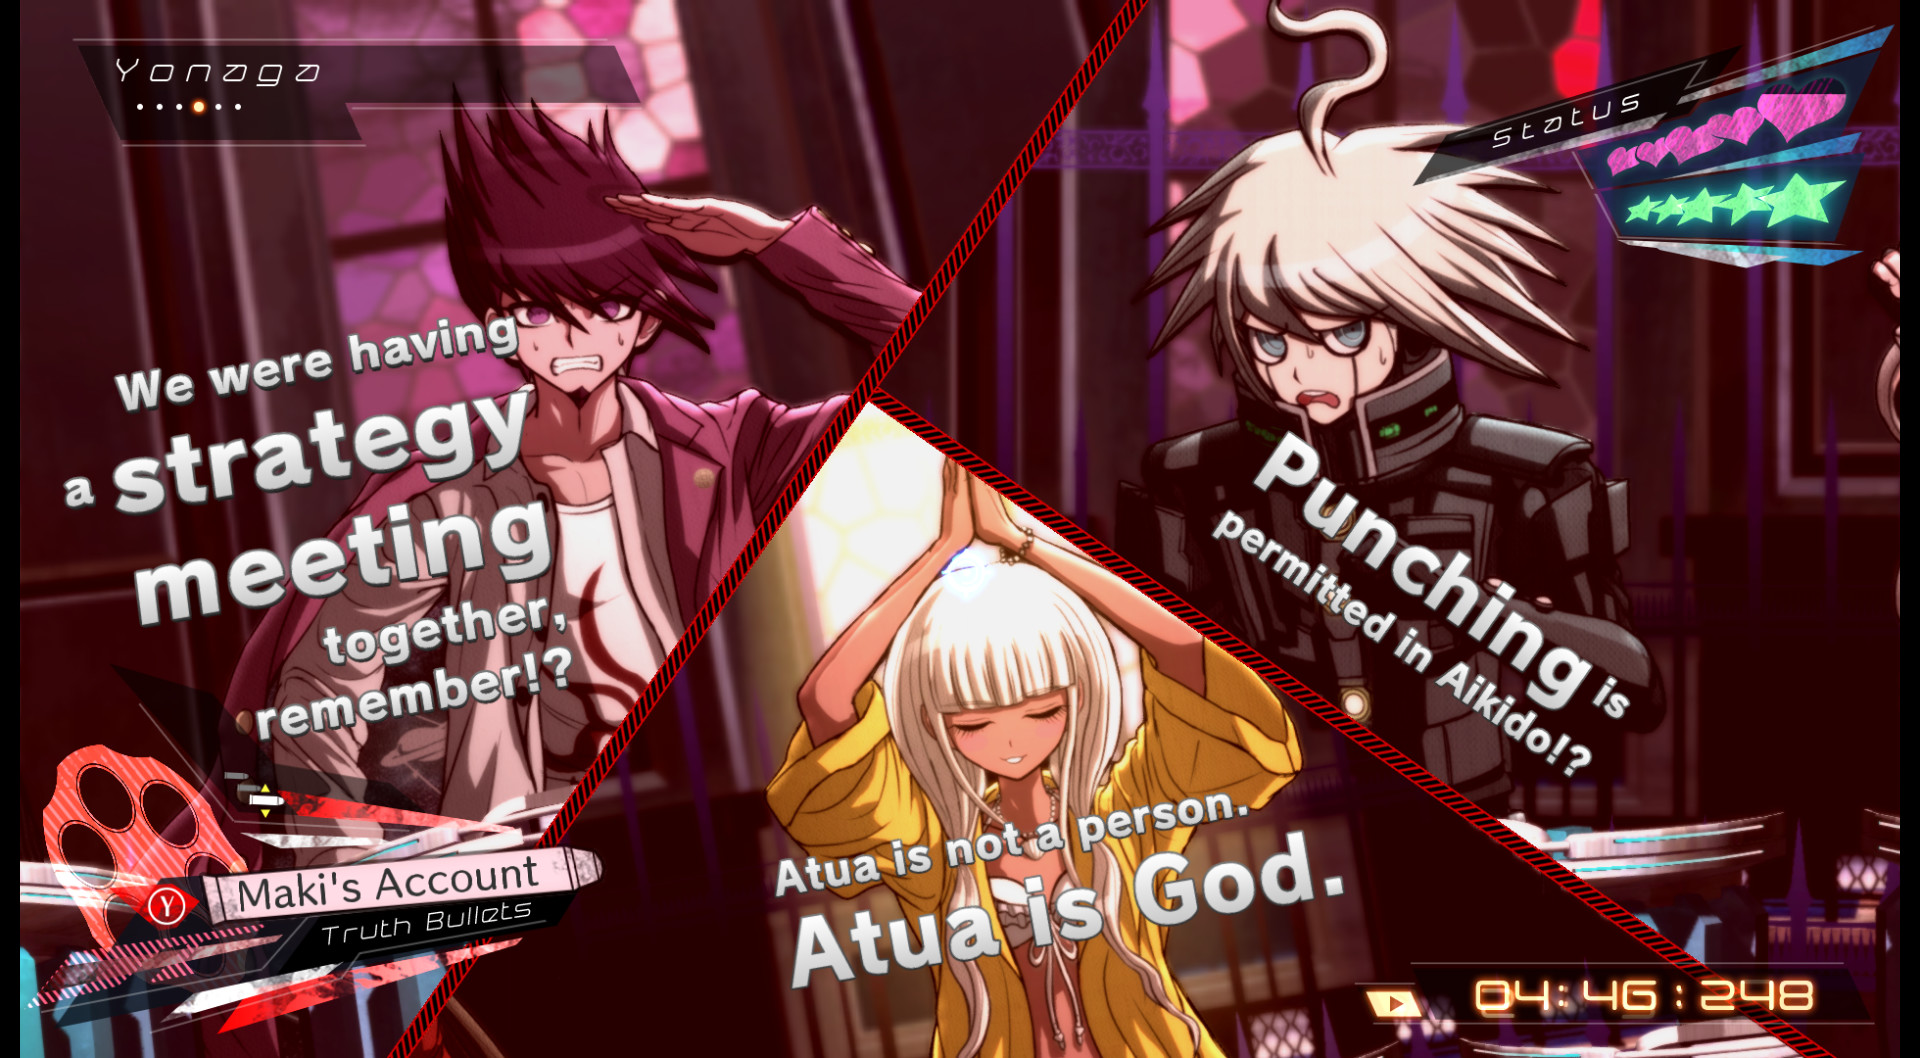 Danganronpa V3 How To Unlock Bonus Skills Max Hangout Perks Guide Gameranx If your manga/comic is illustrated with crazy insane amount of details, then sturdy, steady, and simple panels will help to hold your content in place. danganronpa v3 how to unlock bonus